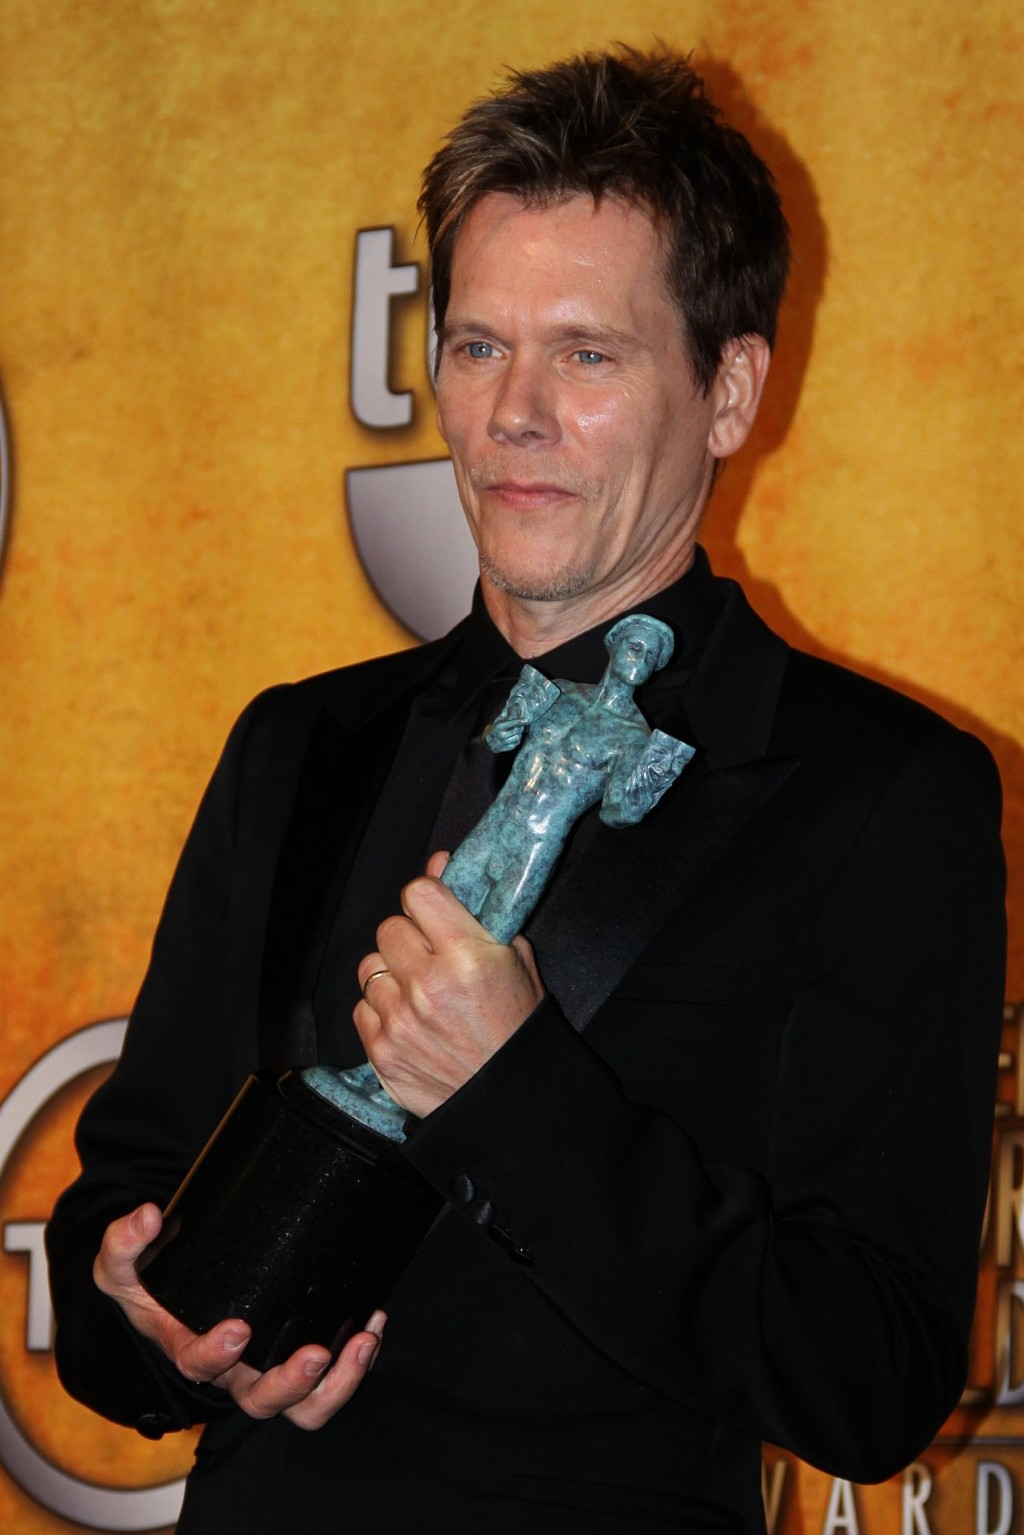 Actor Kevin Bacon HD Wallpaper Celebrities Wallpapers 1024x1535